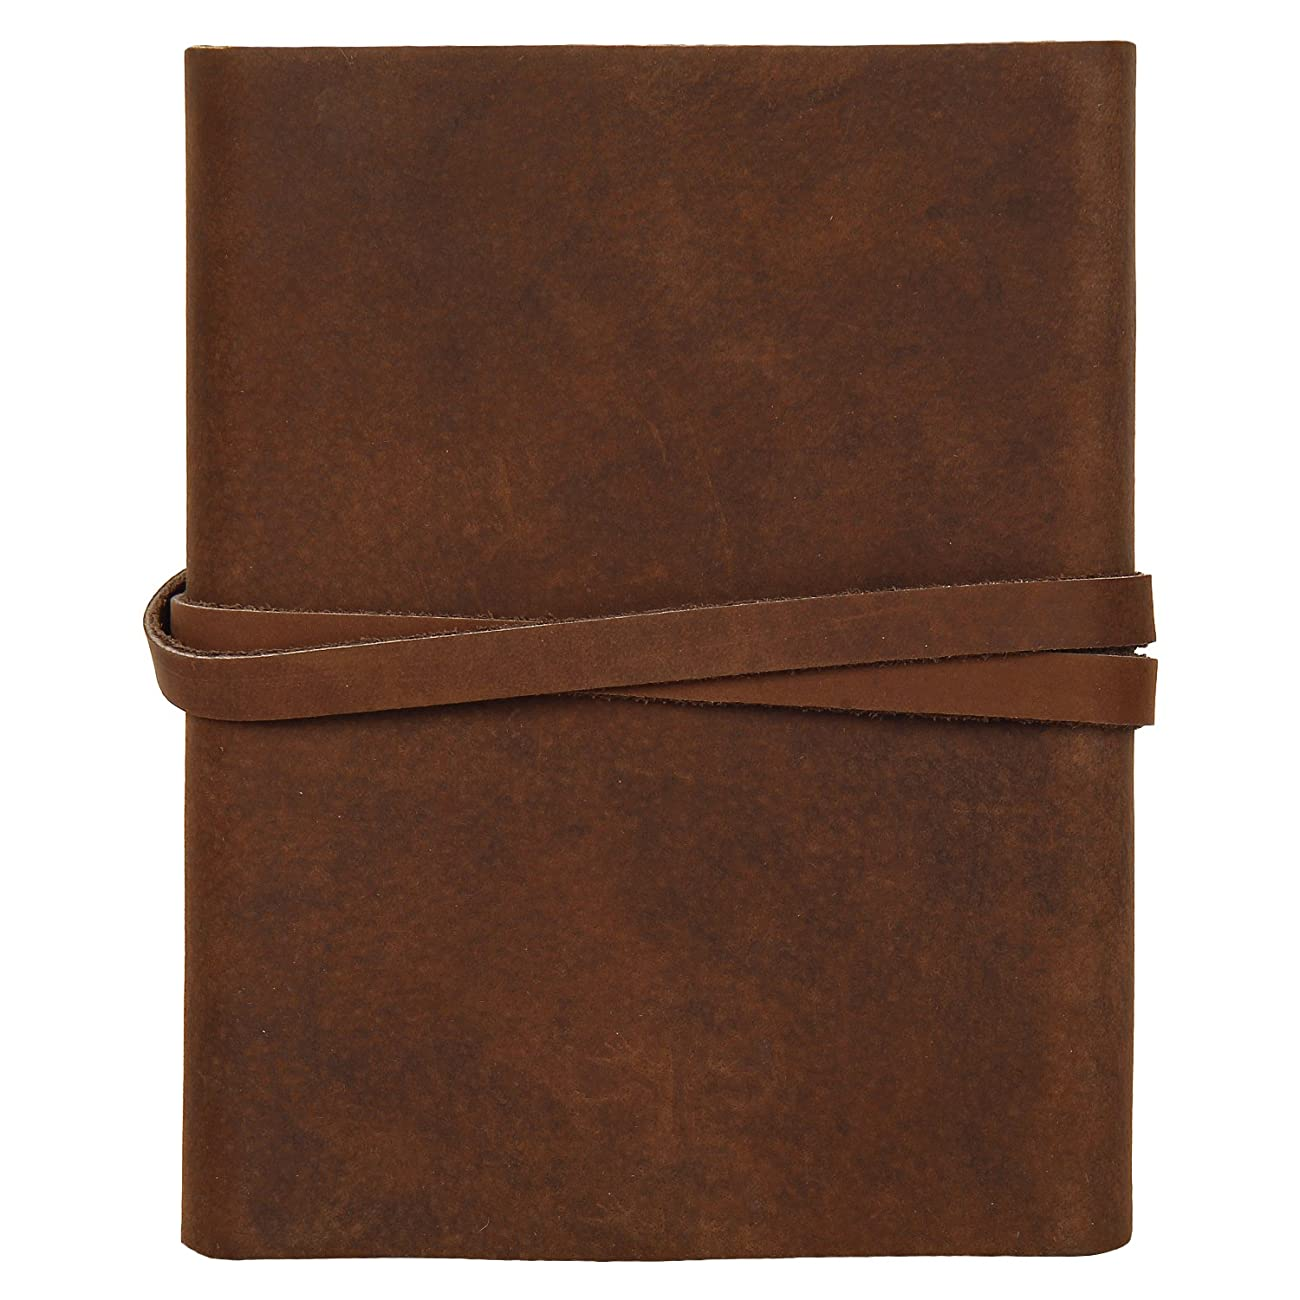 Handmade Medium Vintage Leather Journal Diary 2